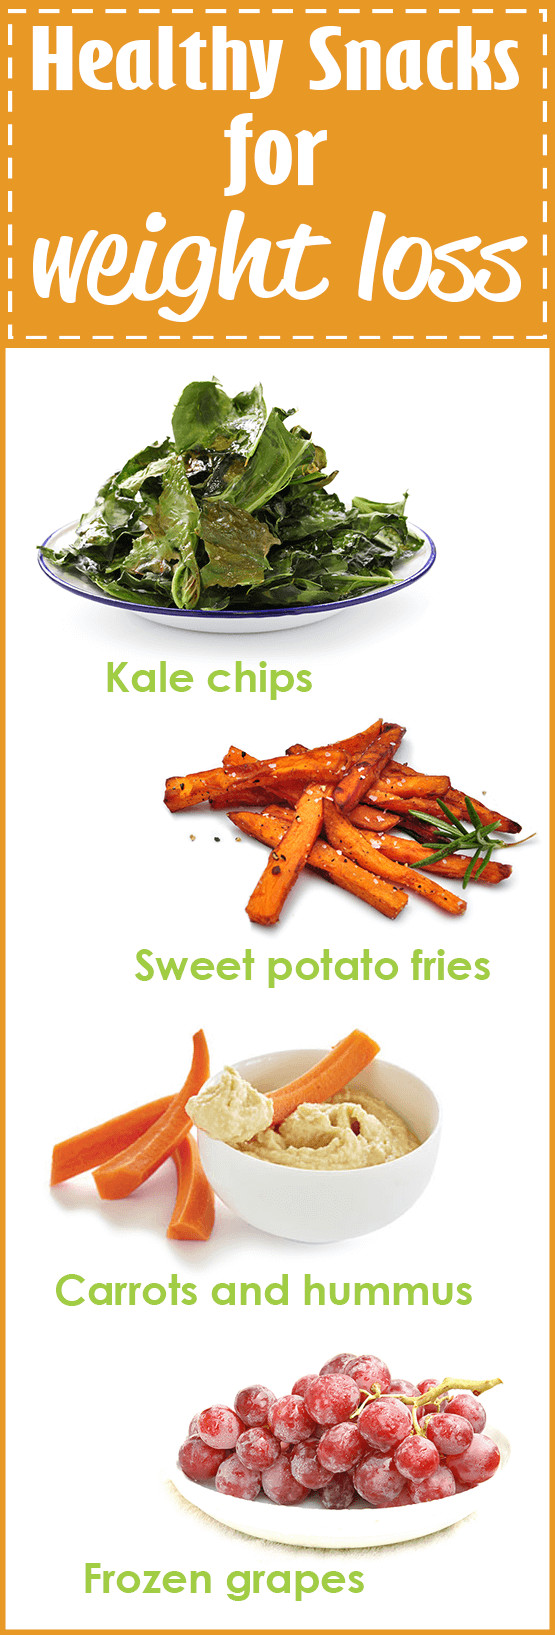 Healthy Snacks While Dieting  Healthy Snacks for Weight Loss •